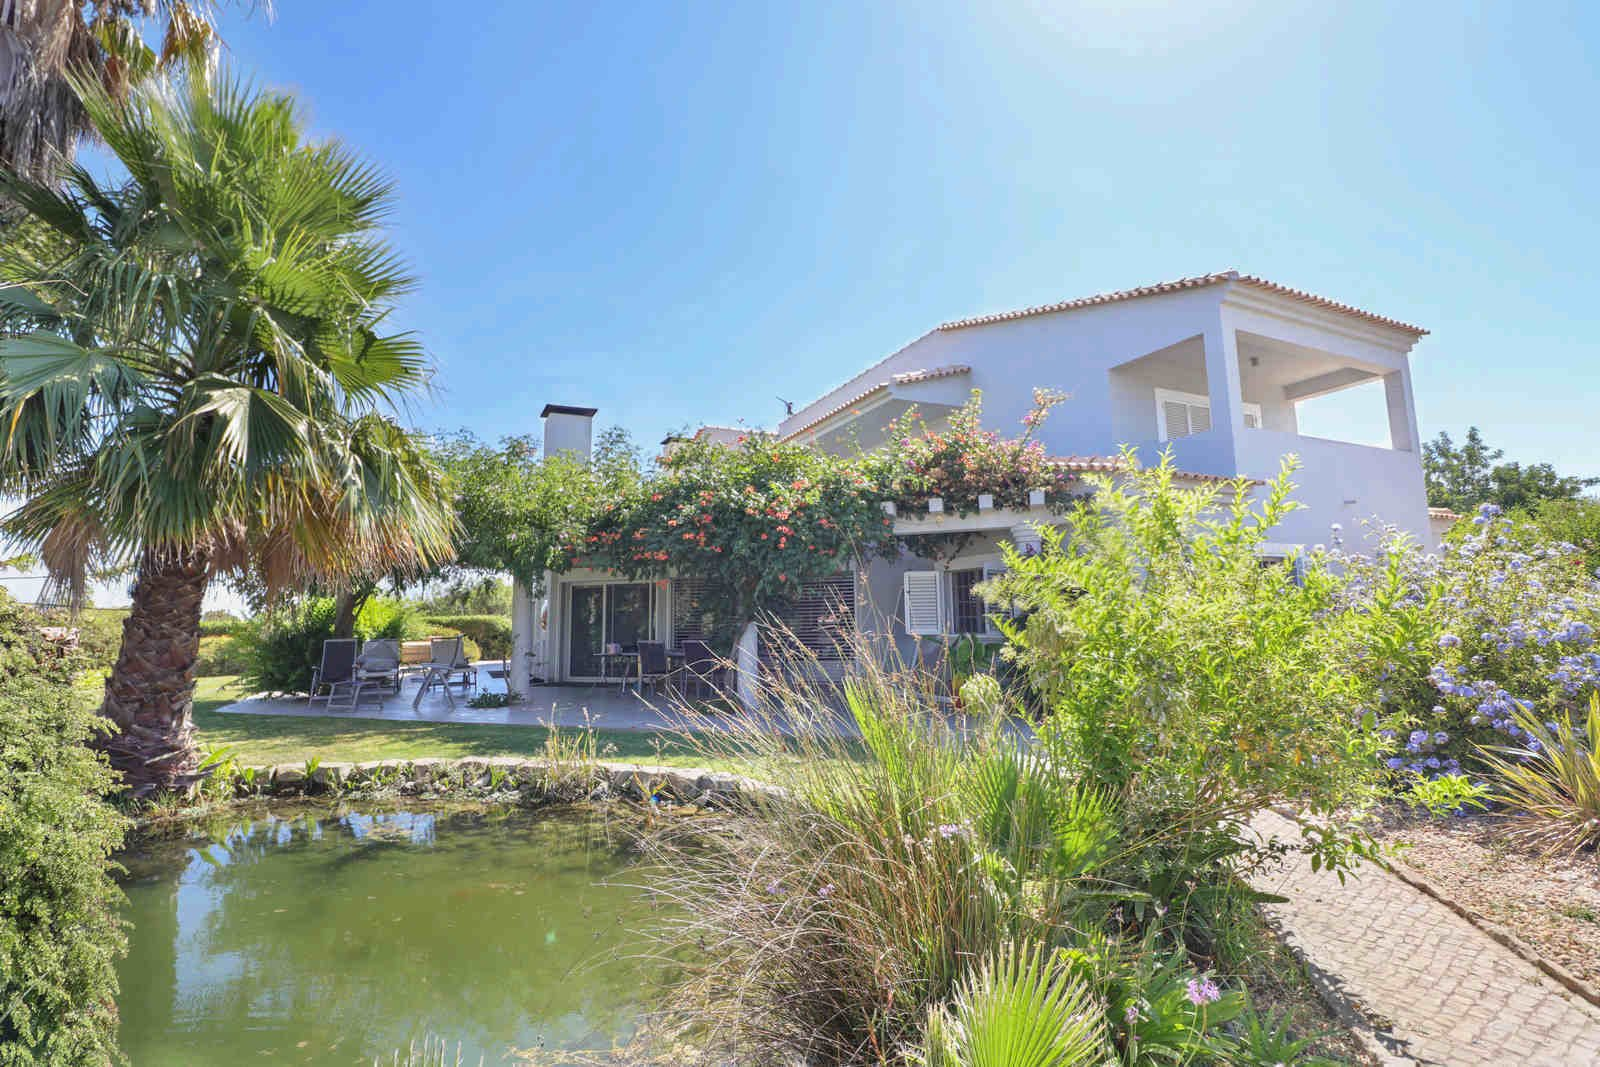 4 Bedroom Villa Almancil, Central Algarve Ref: PV3582